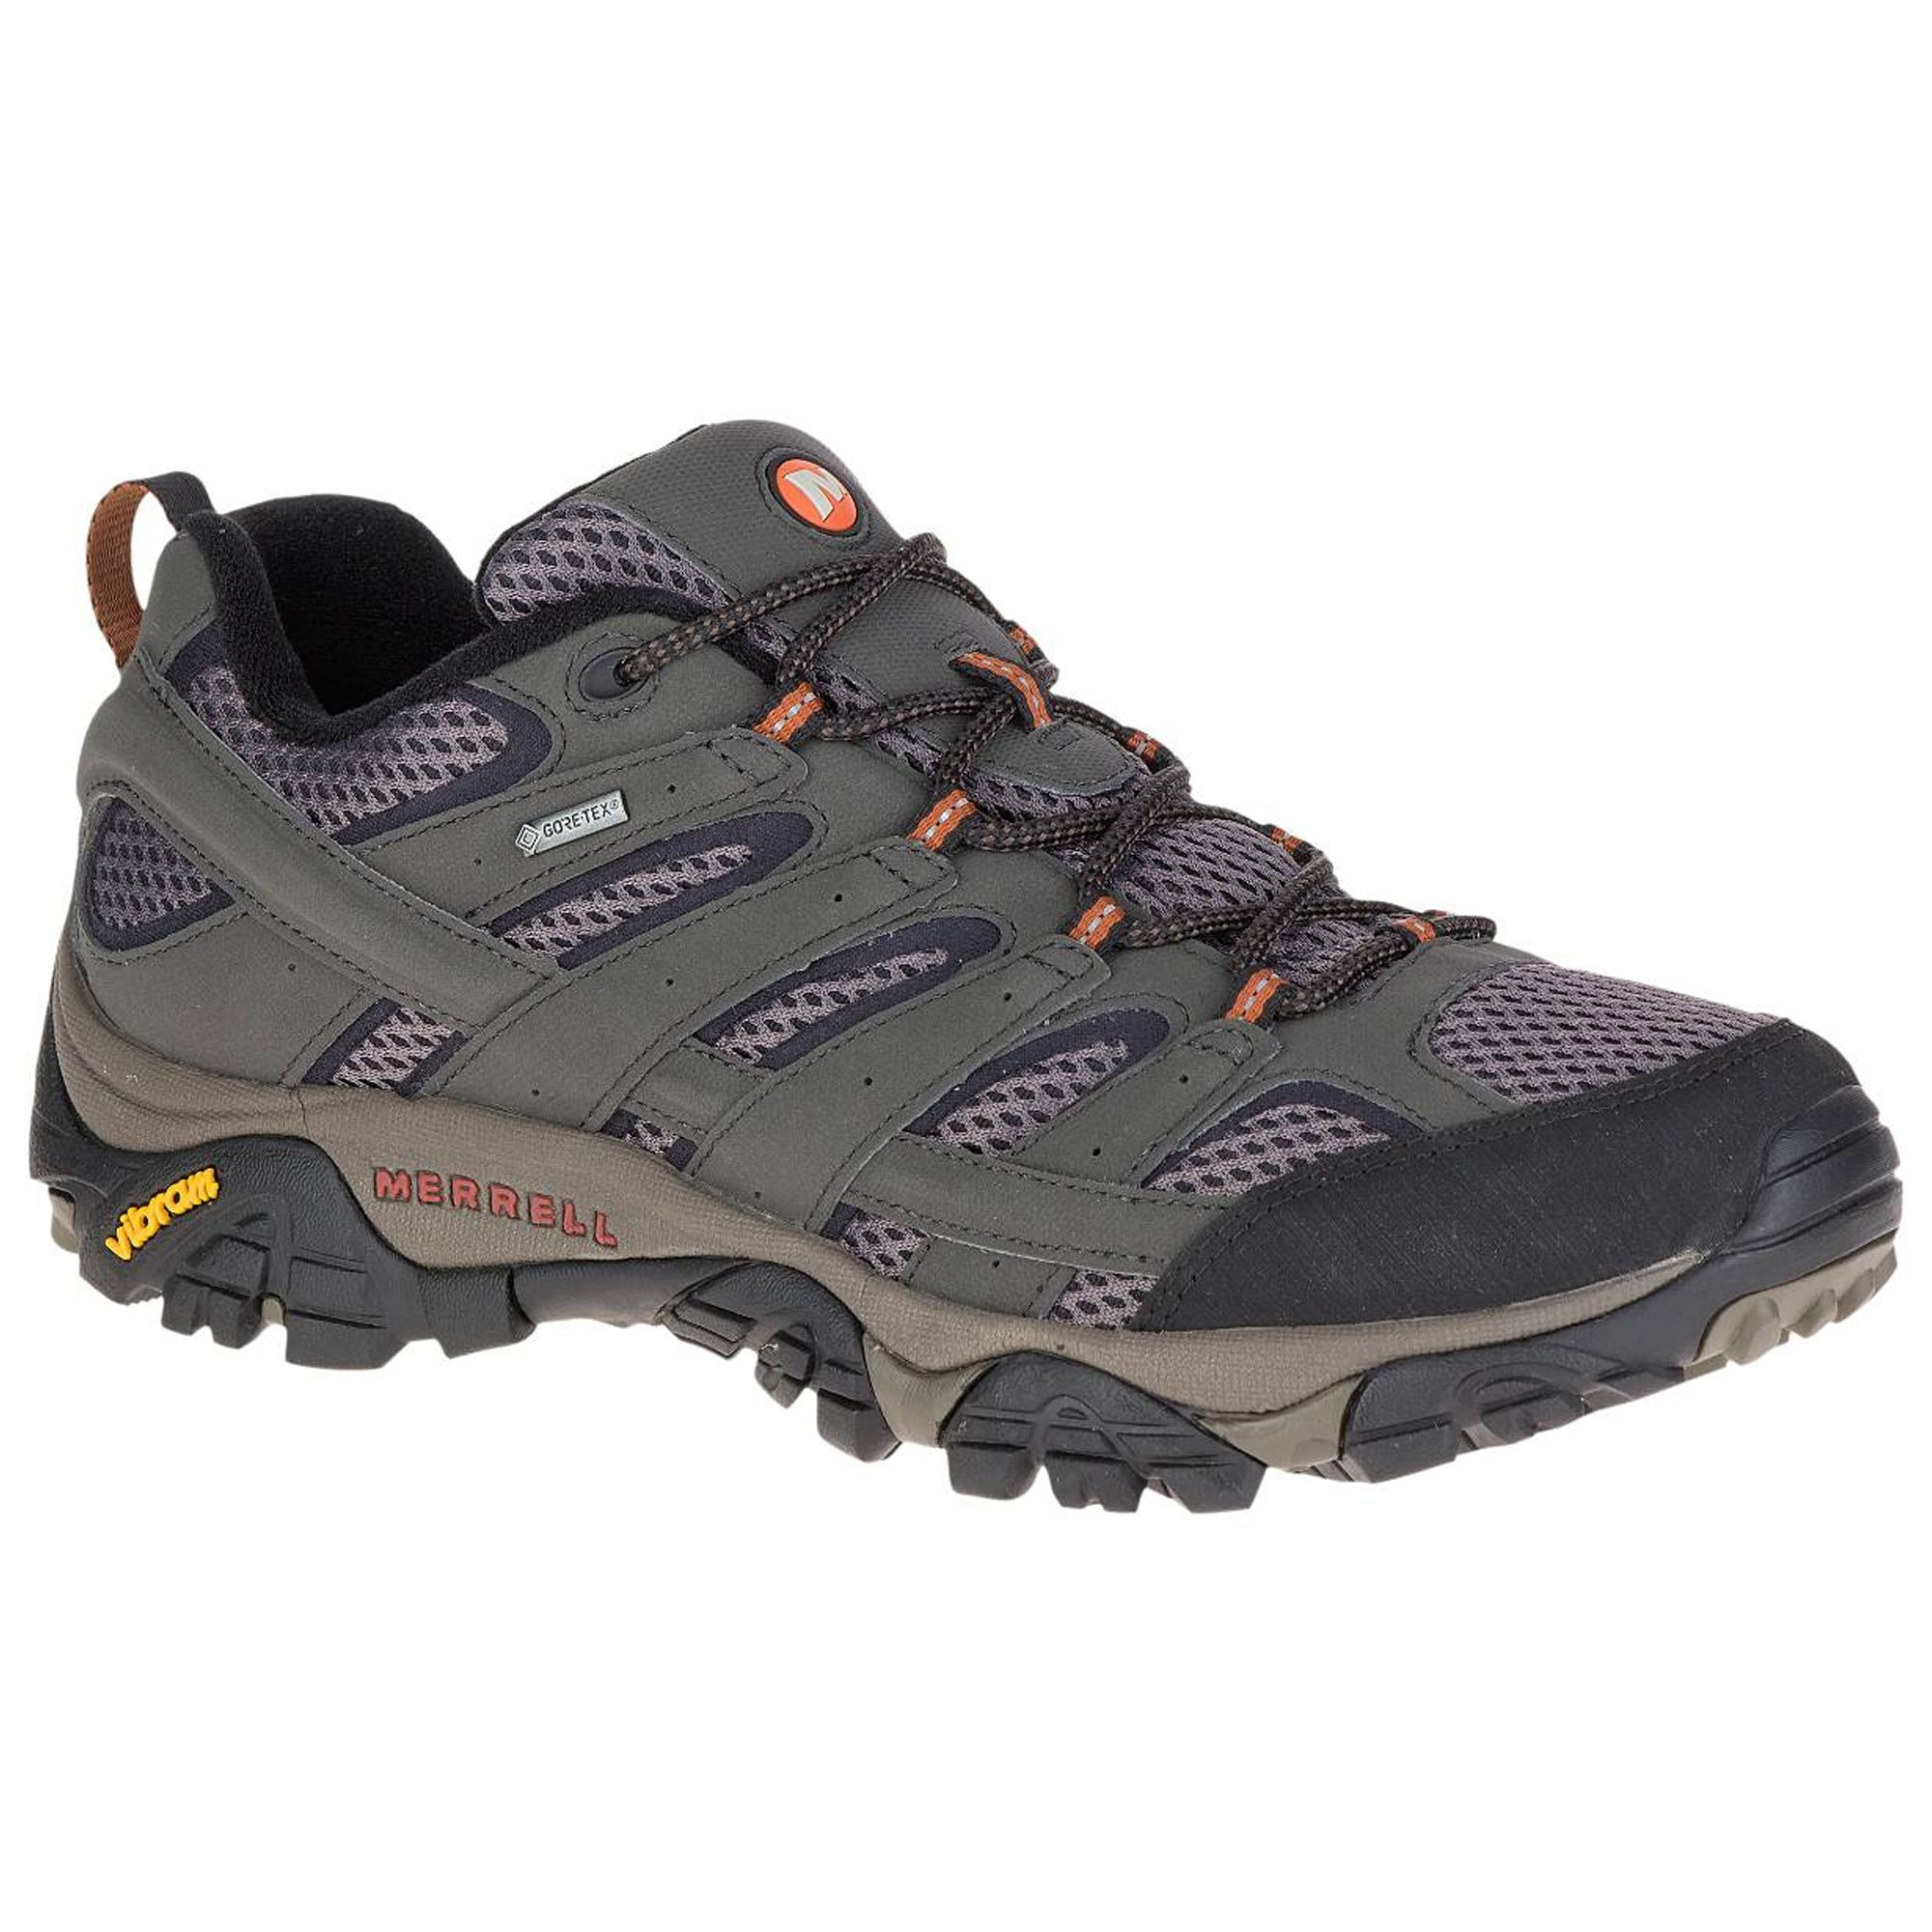 merrell mens shoes size 13 kn